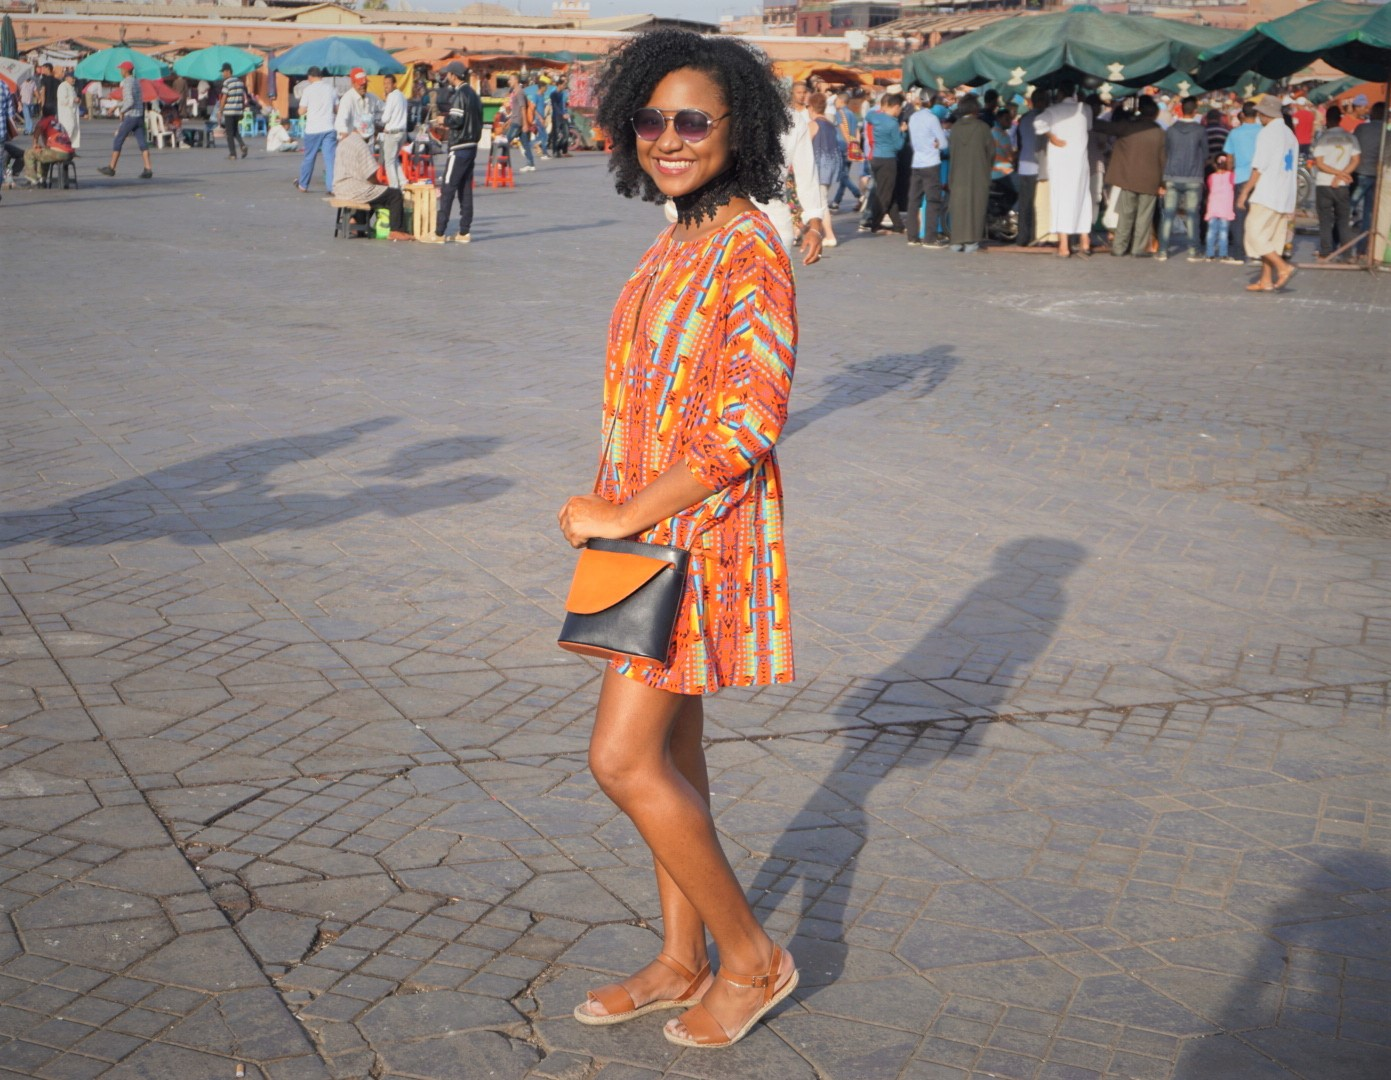 tribal print tunic outfit in morocco markets